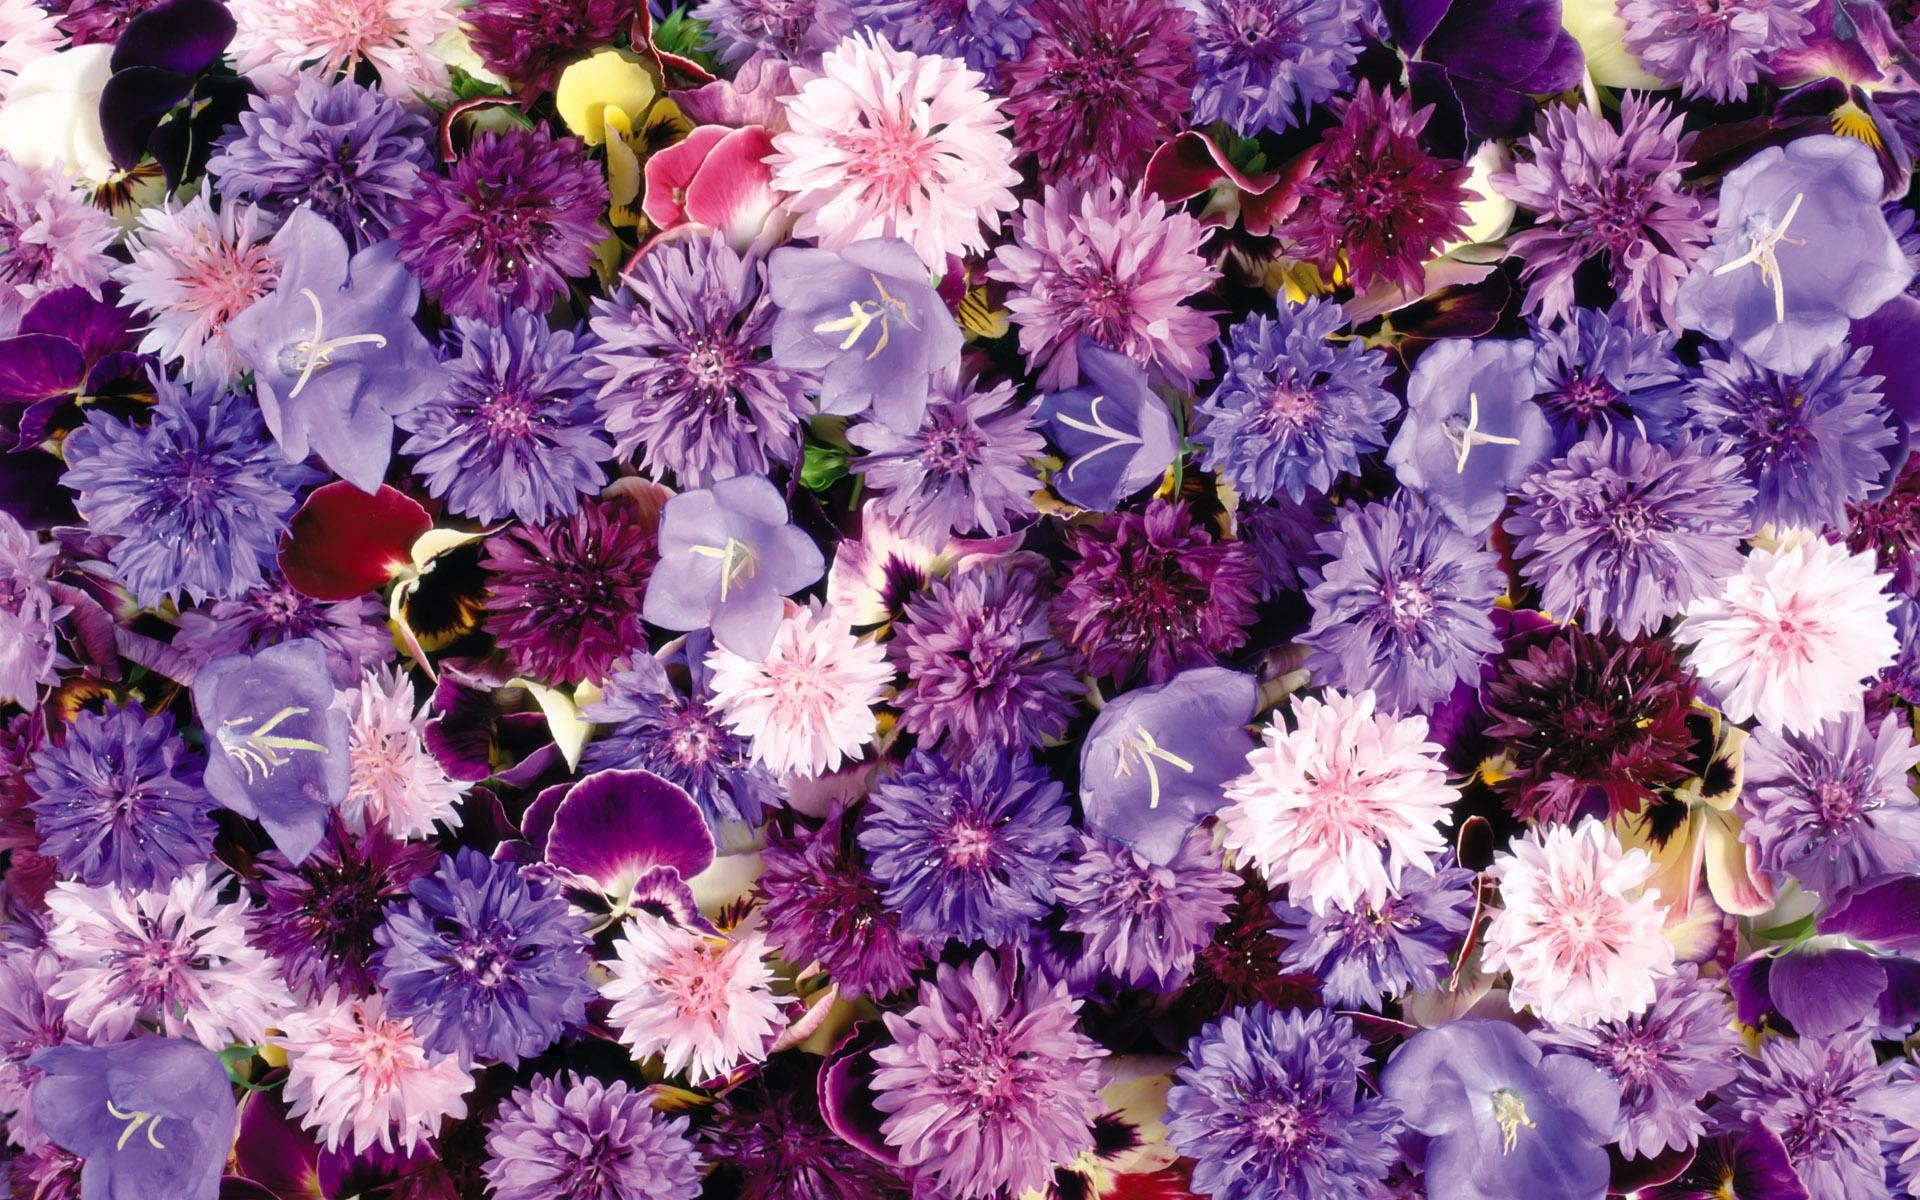 Full Hd Of Lots Violet Flowers Screen Wallpaper Flower Flower Aesthetic Purple Background 297522 Hd Wallpaper Backgrounds Download